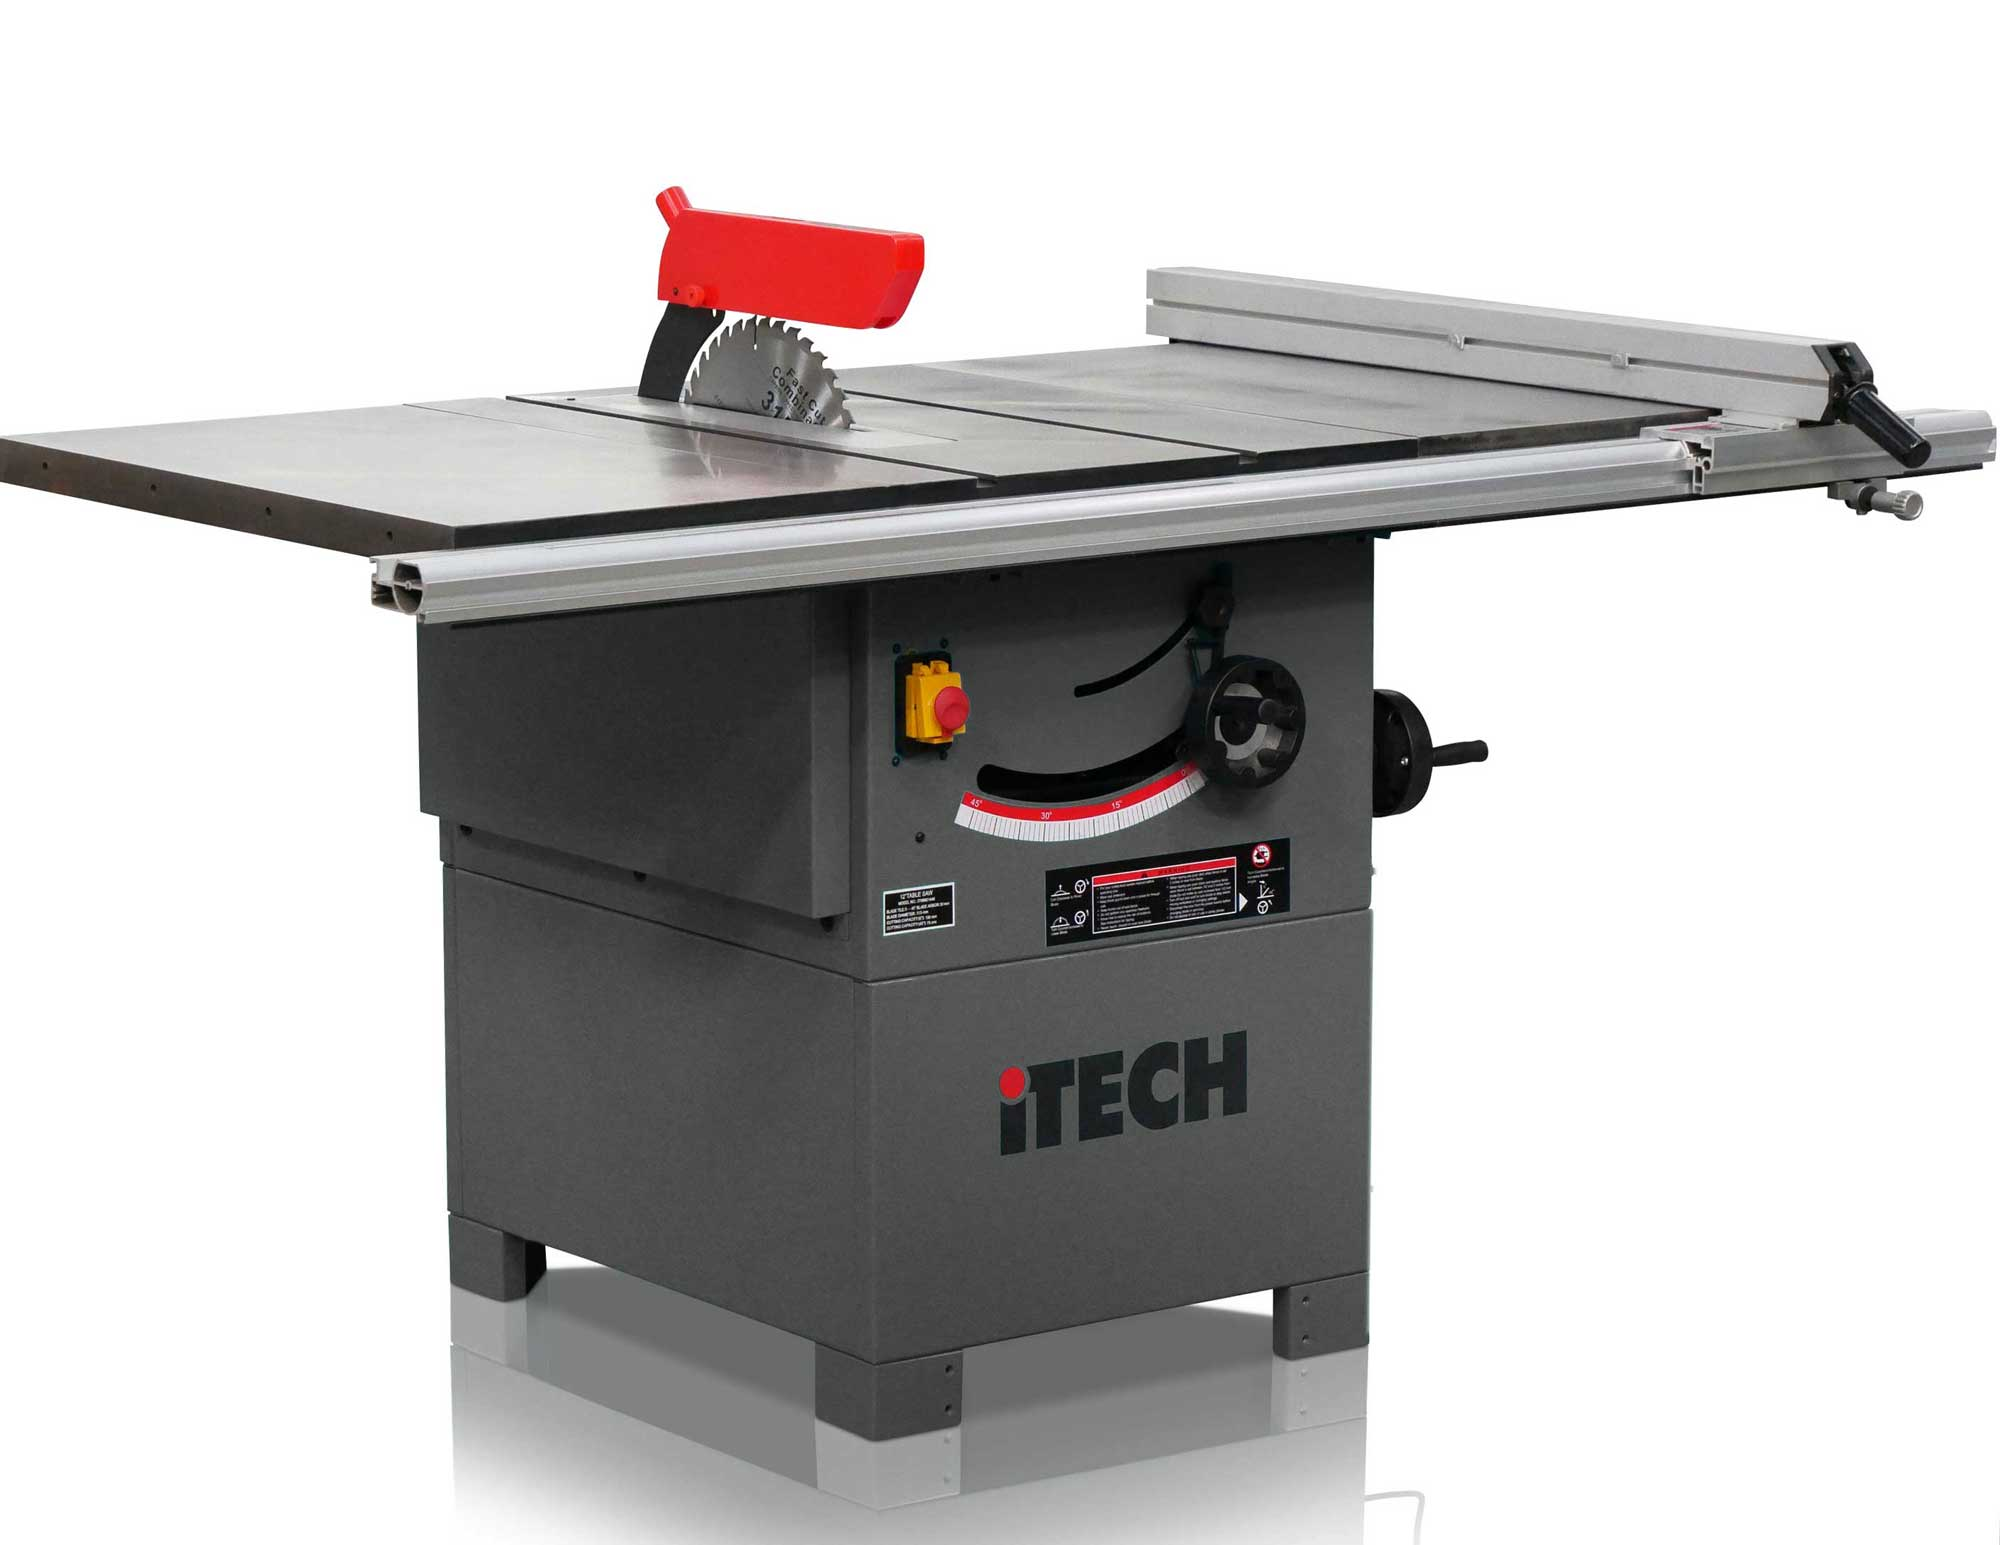 ITECH 01446 315mm Cast Iron Table Saw Bench